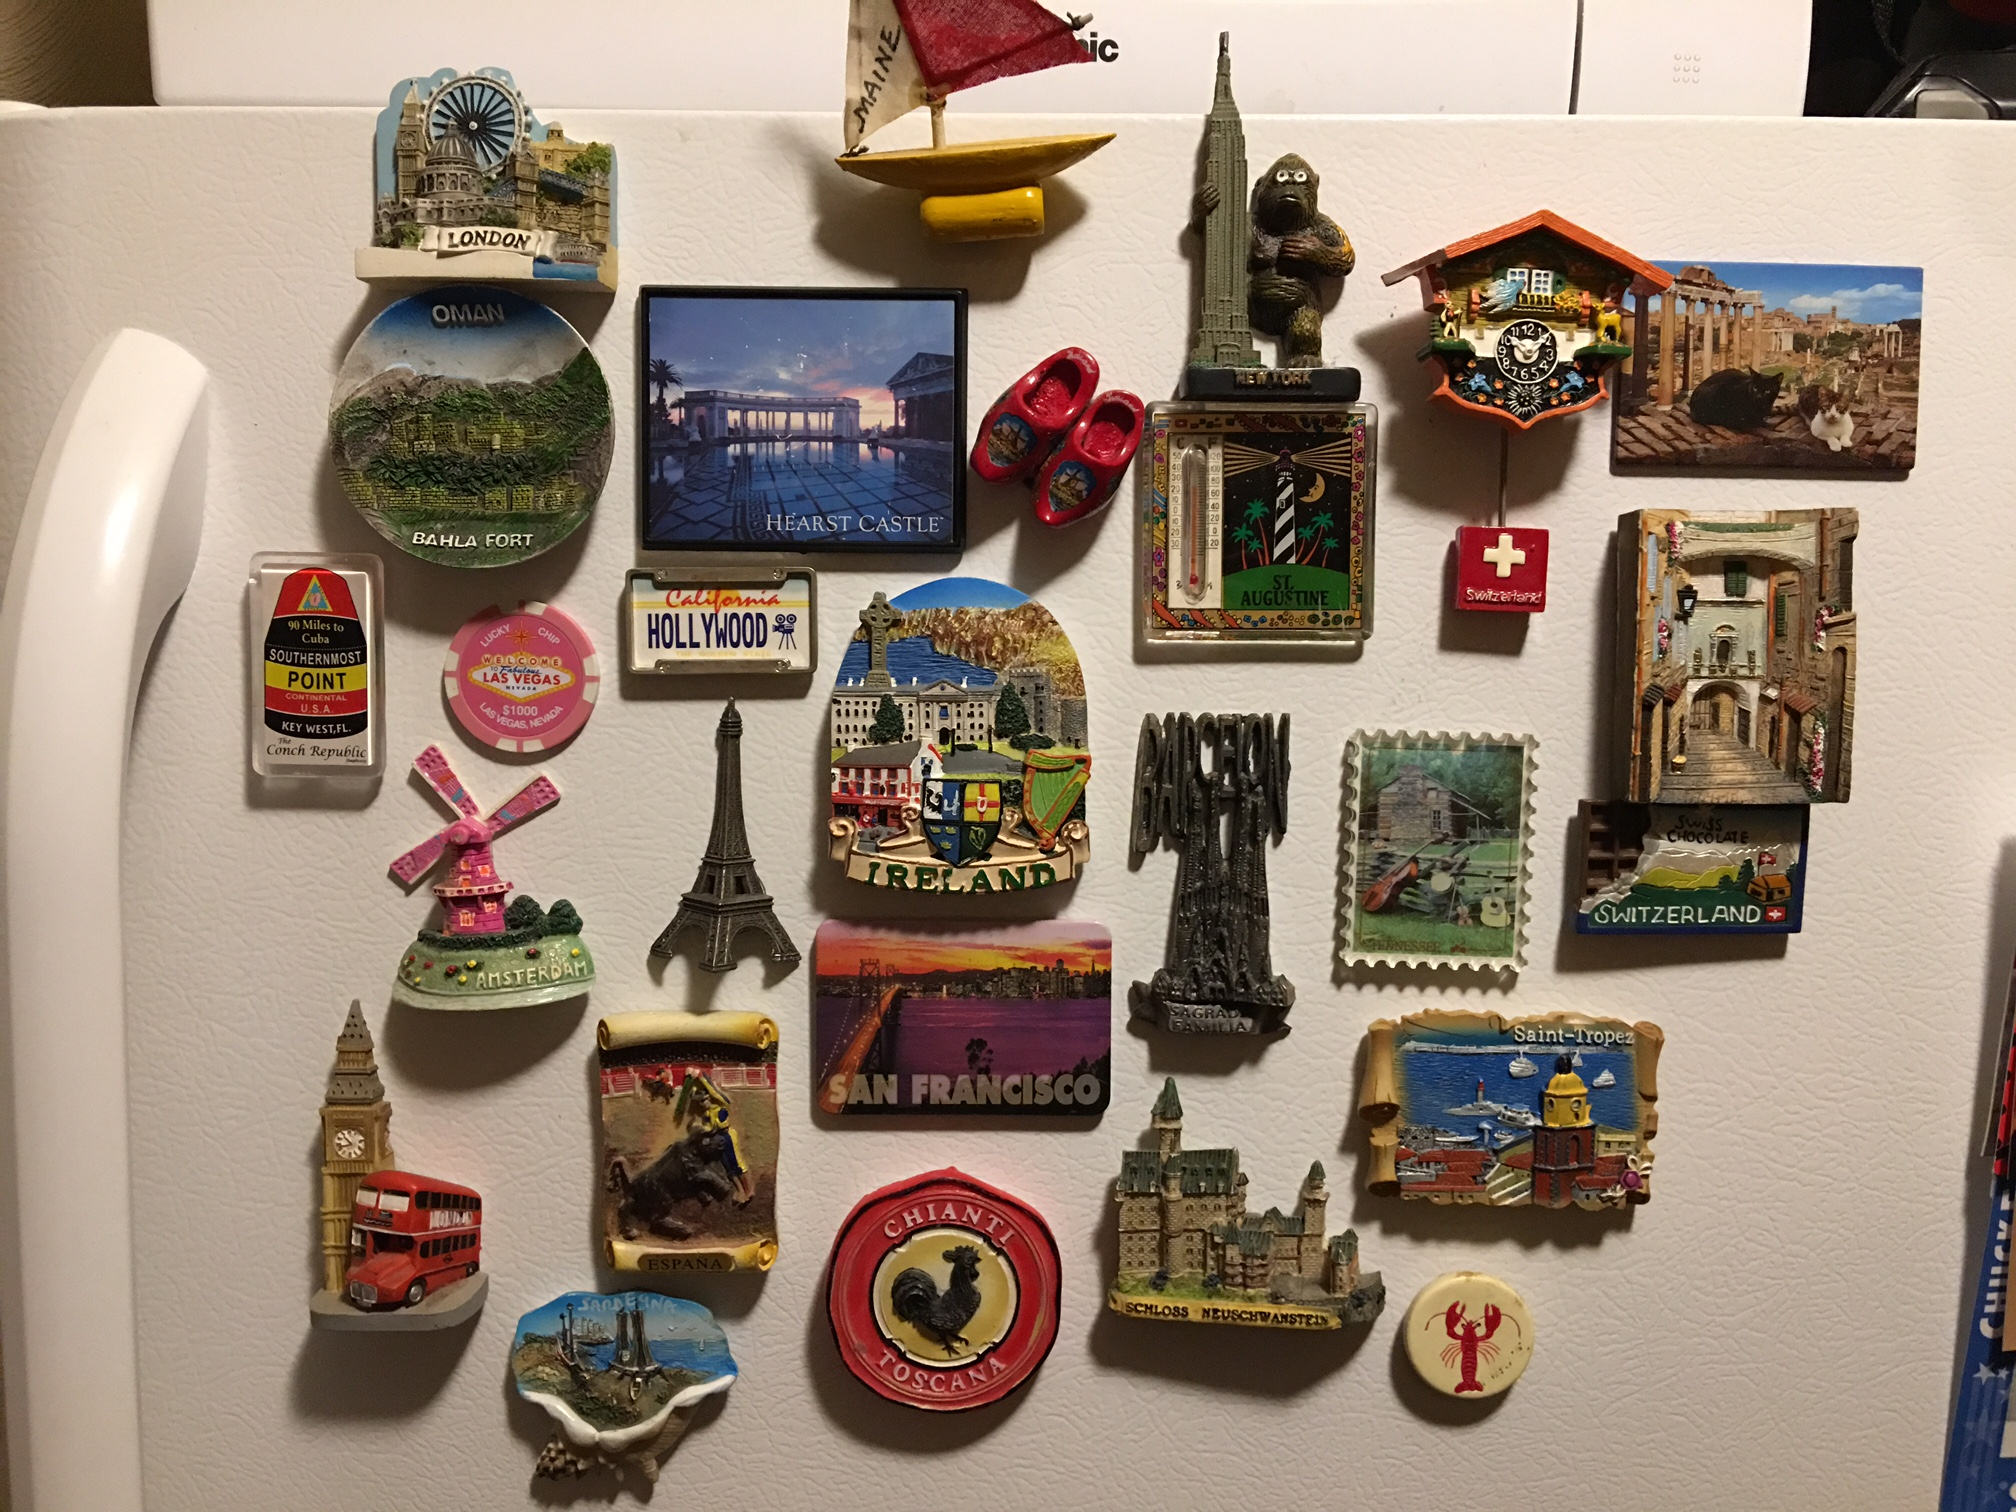 Ever since I was little, my mom has collected magnets from places we've been to. I'd say the collection is fairly extensive.